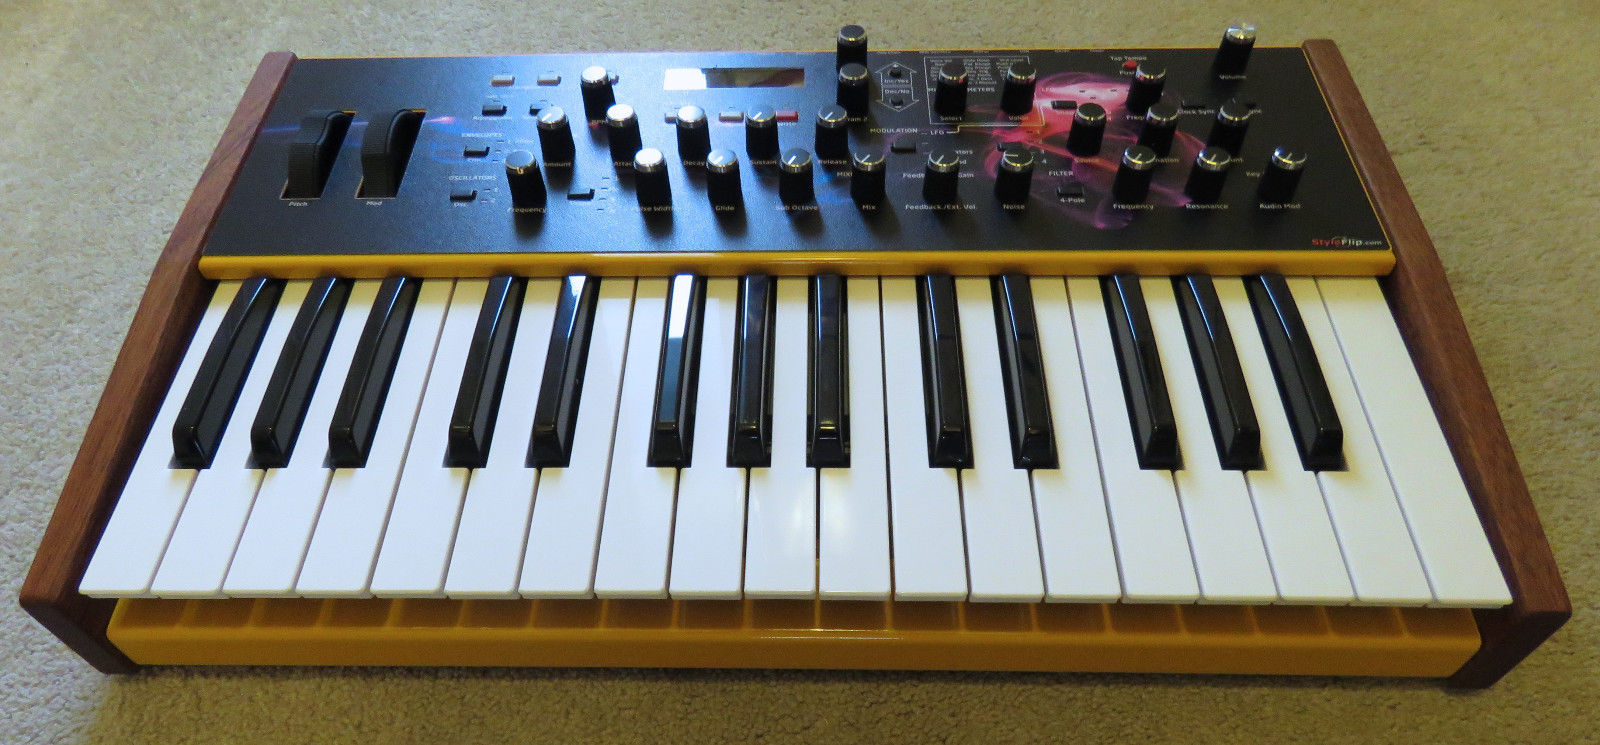 matrixsynth dave smith instruments mopho sn 01798 w custom faceplate prophet knobs. Black Bedroom Furniture Sets. Home Design Ideas